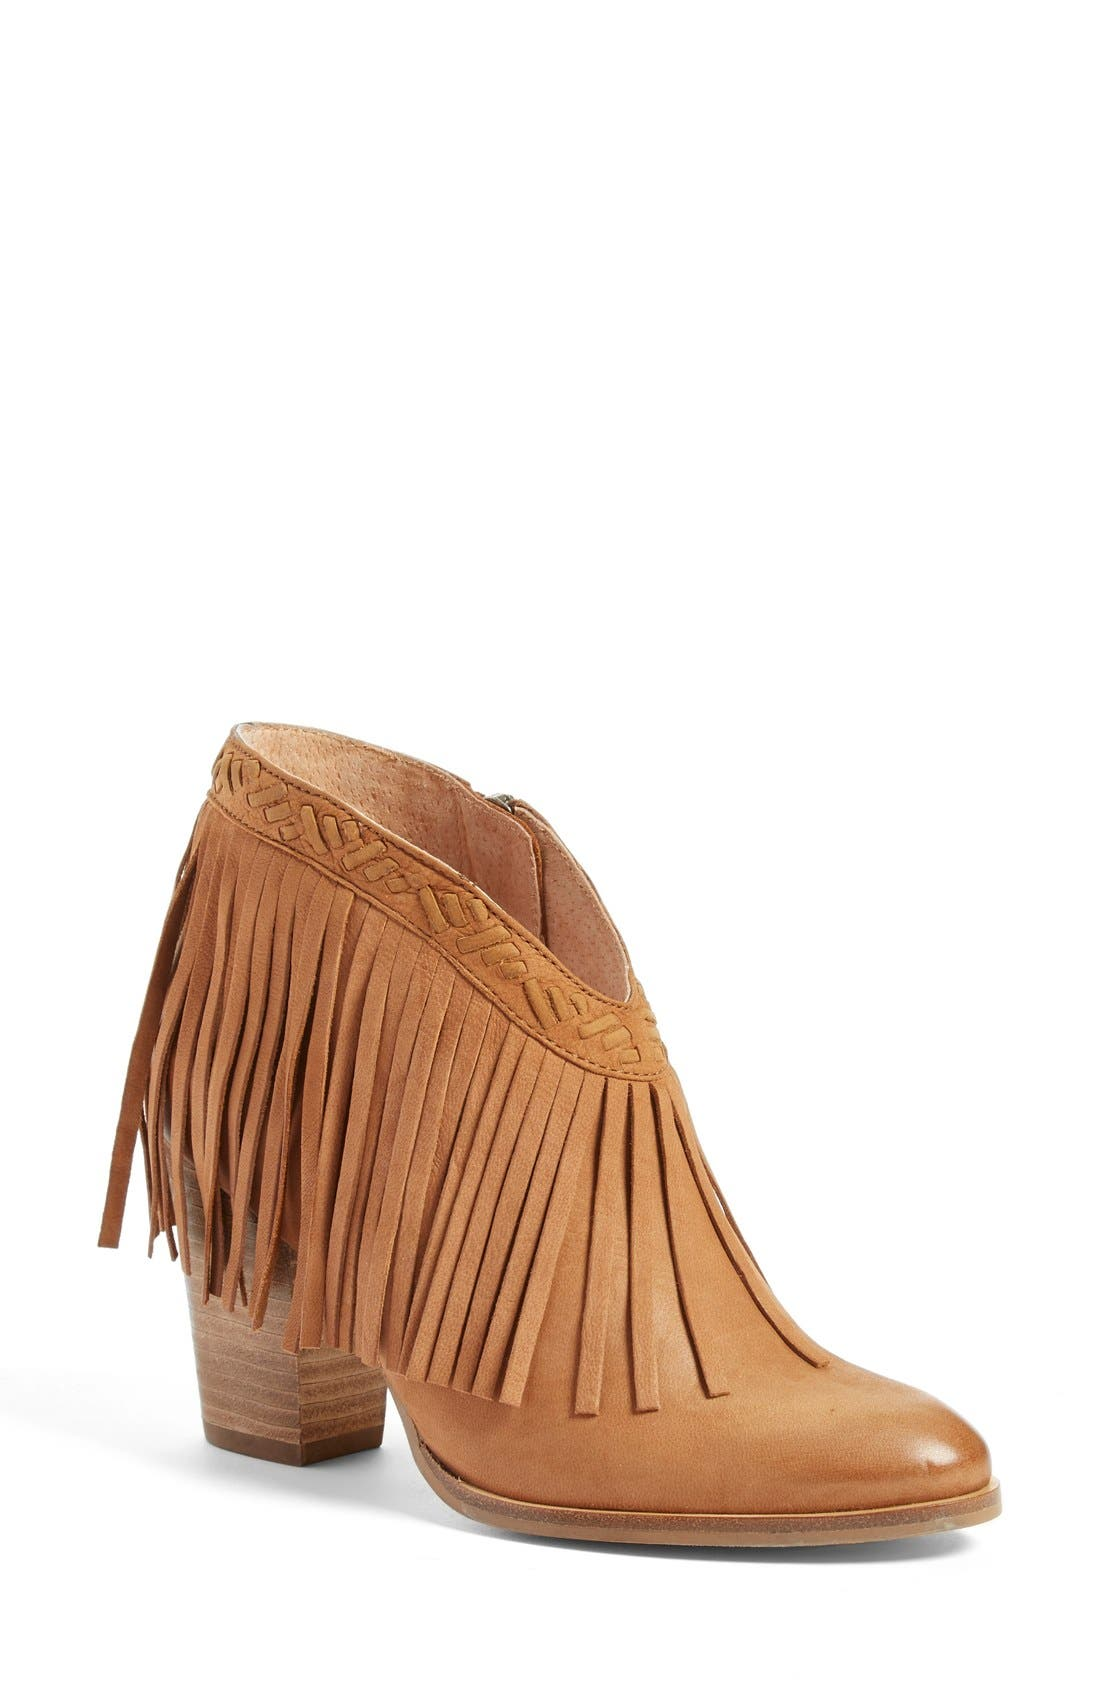 Alternate Image 1 Selected - Seychelles 'World Tour' Fringe Bootie (Women)